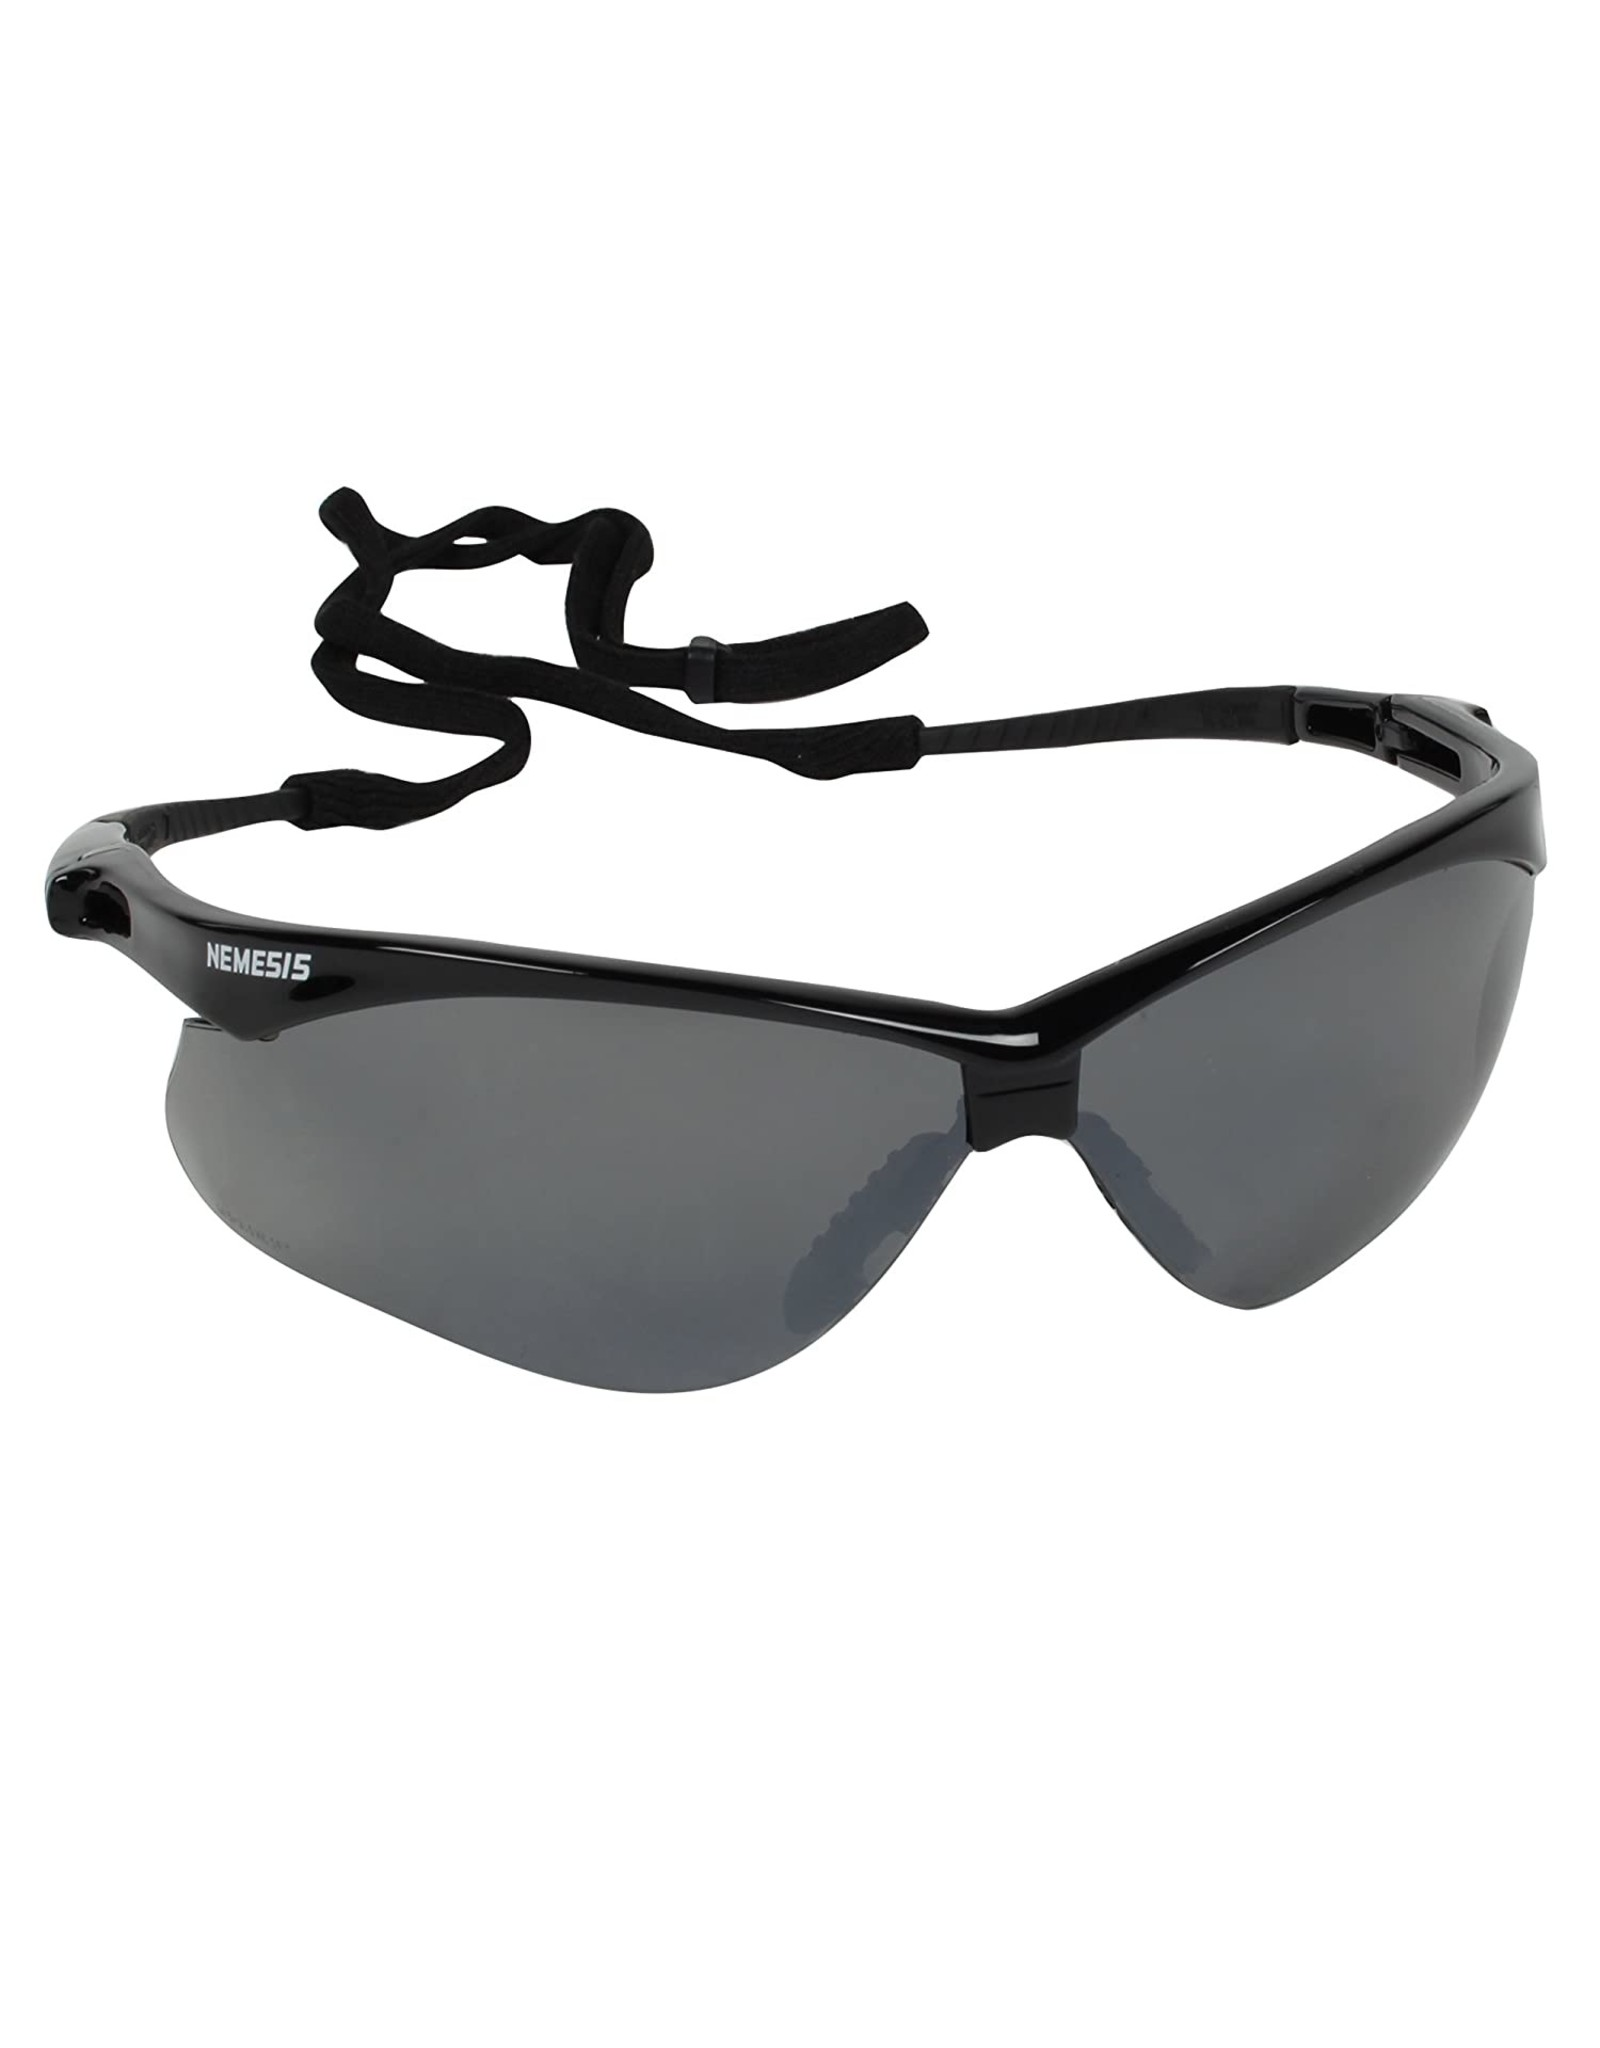 Nemesis Safety Glasses - Smoke